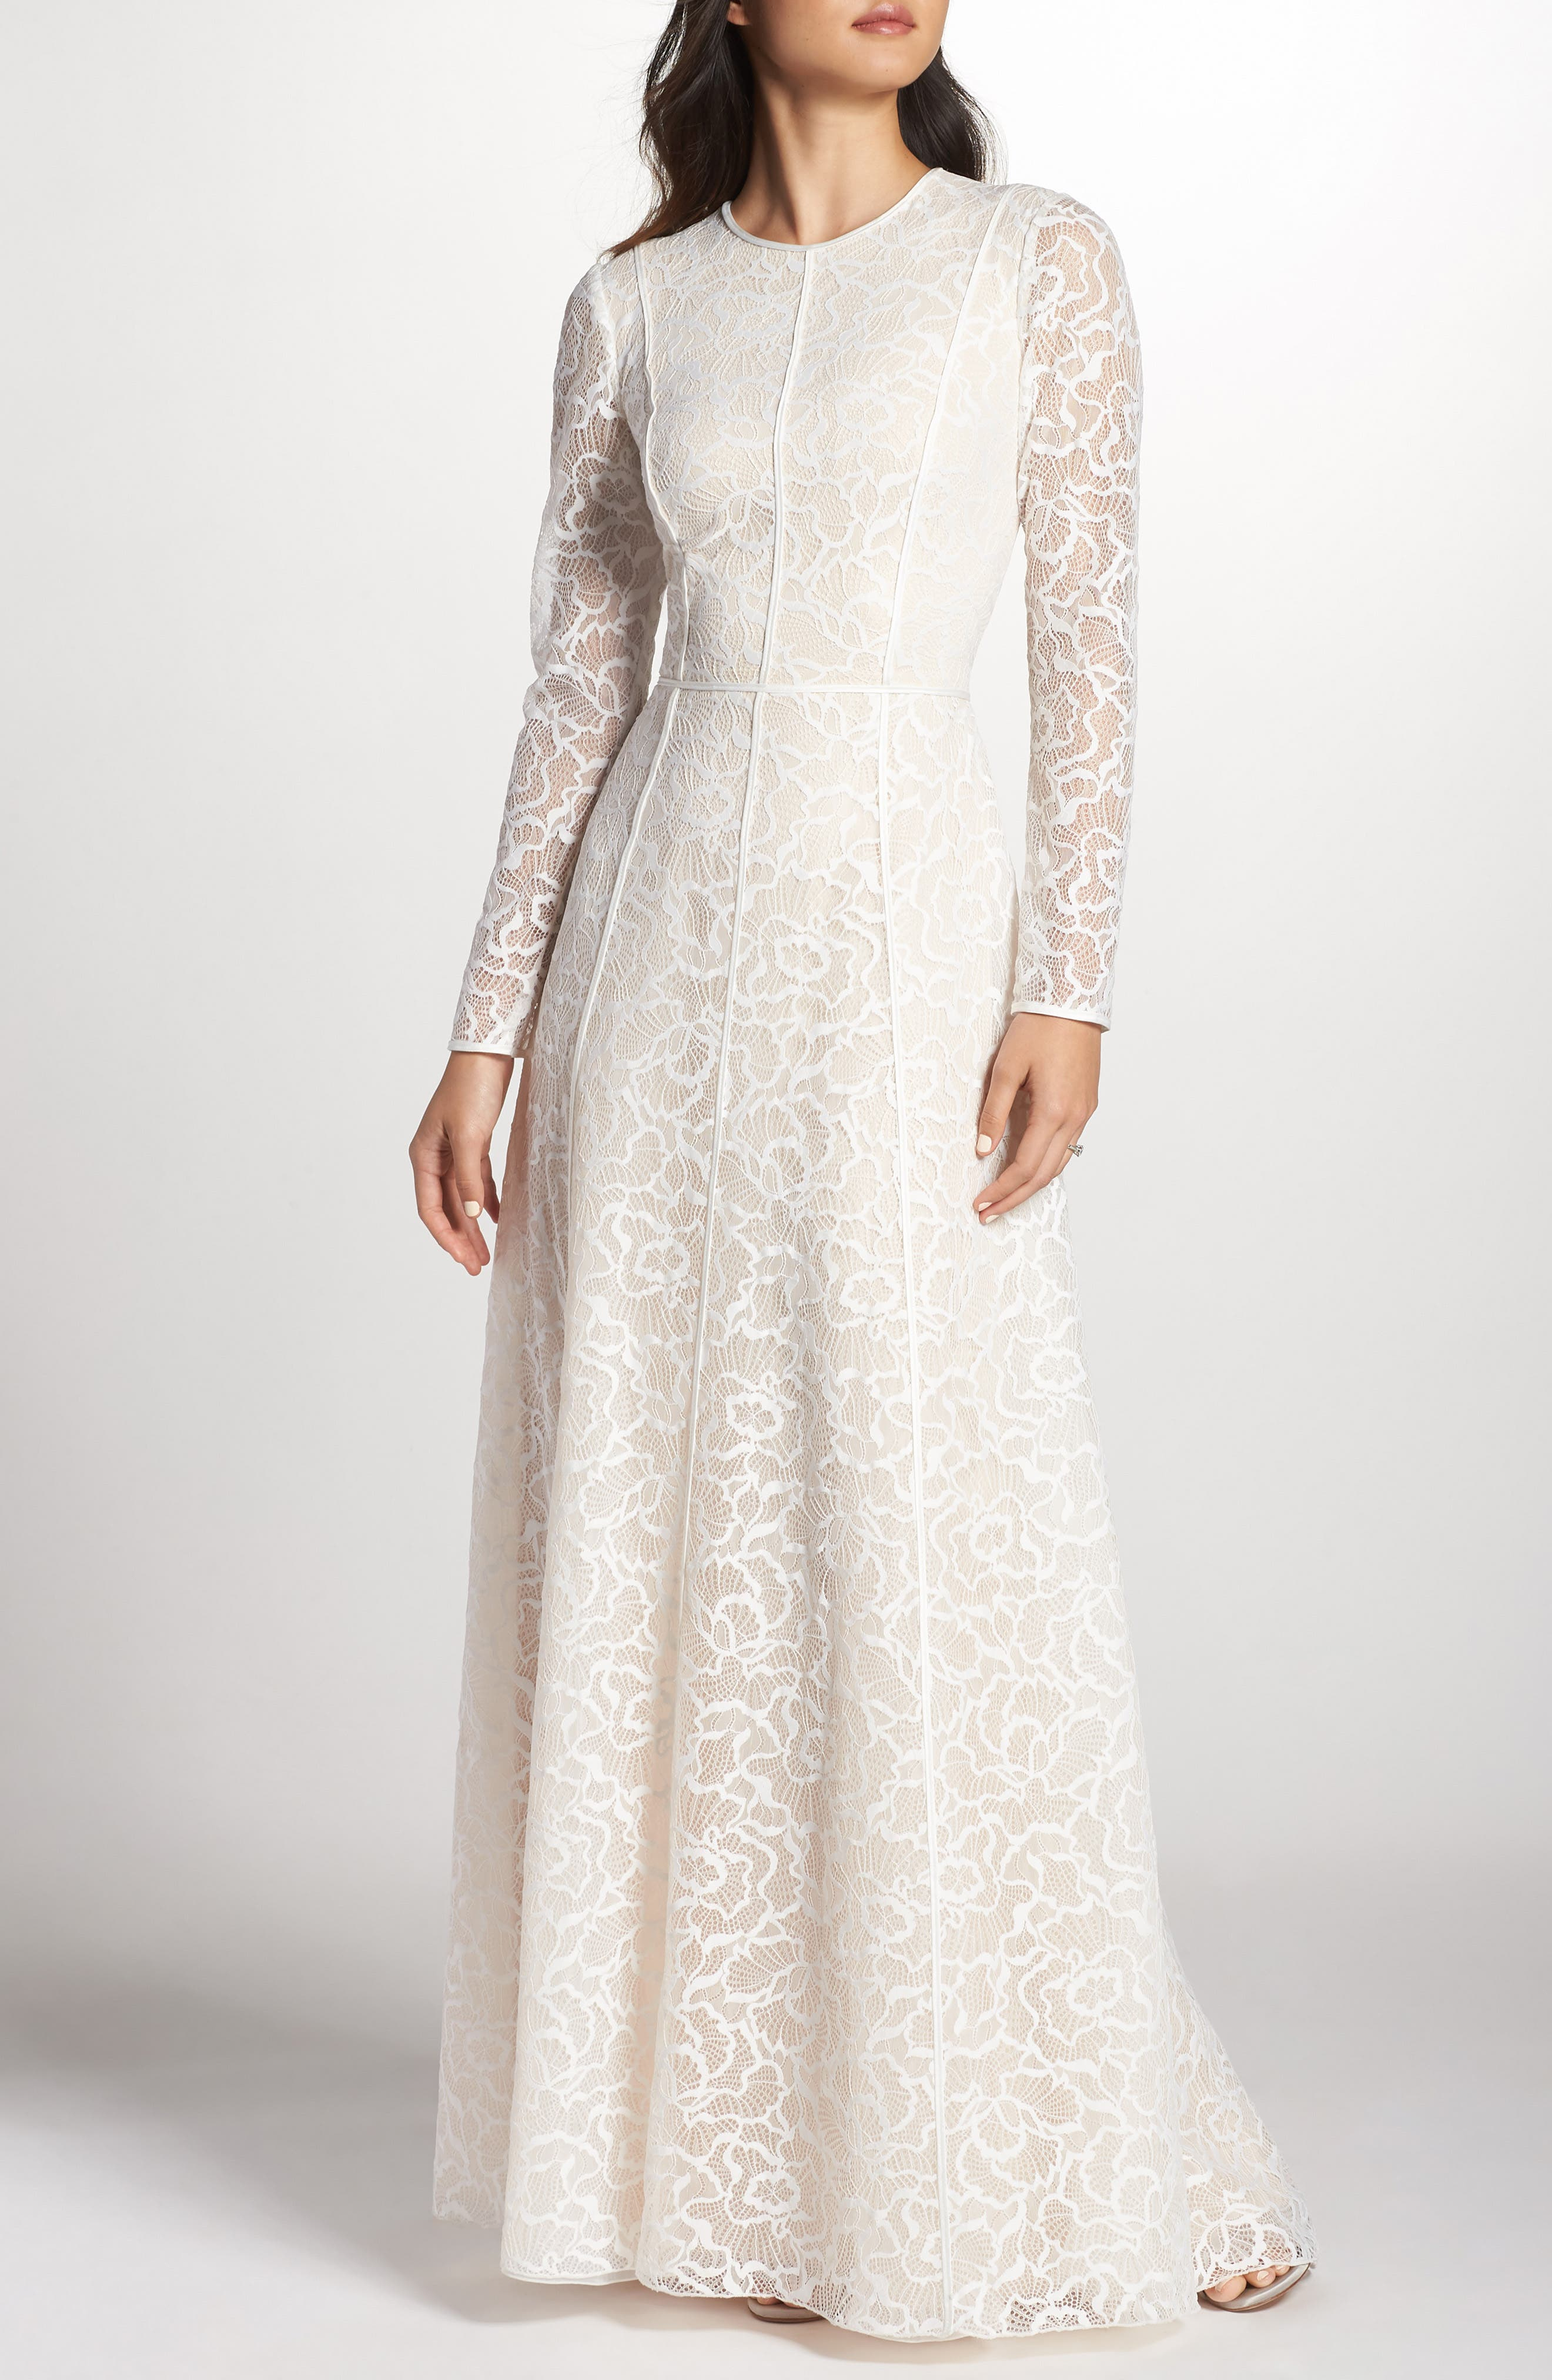 Sheer Sleeve Lace A-Line Gown,                         Main,                         color, IVORY/ PETAL